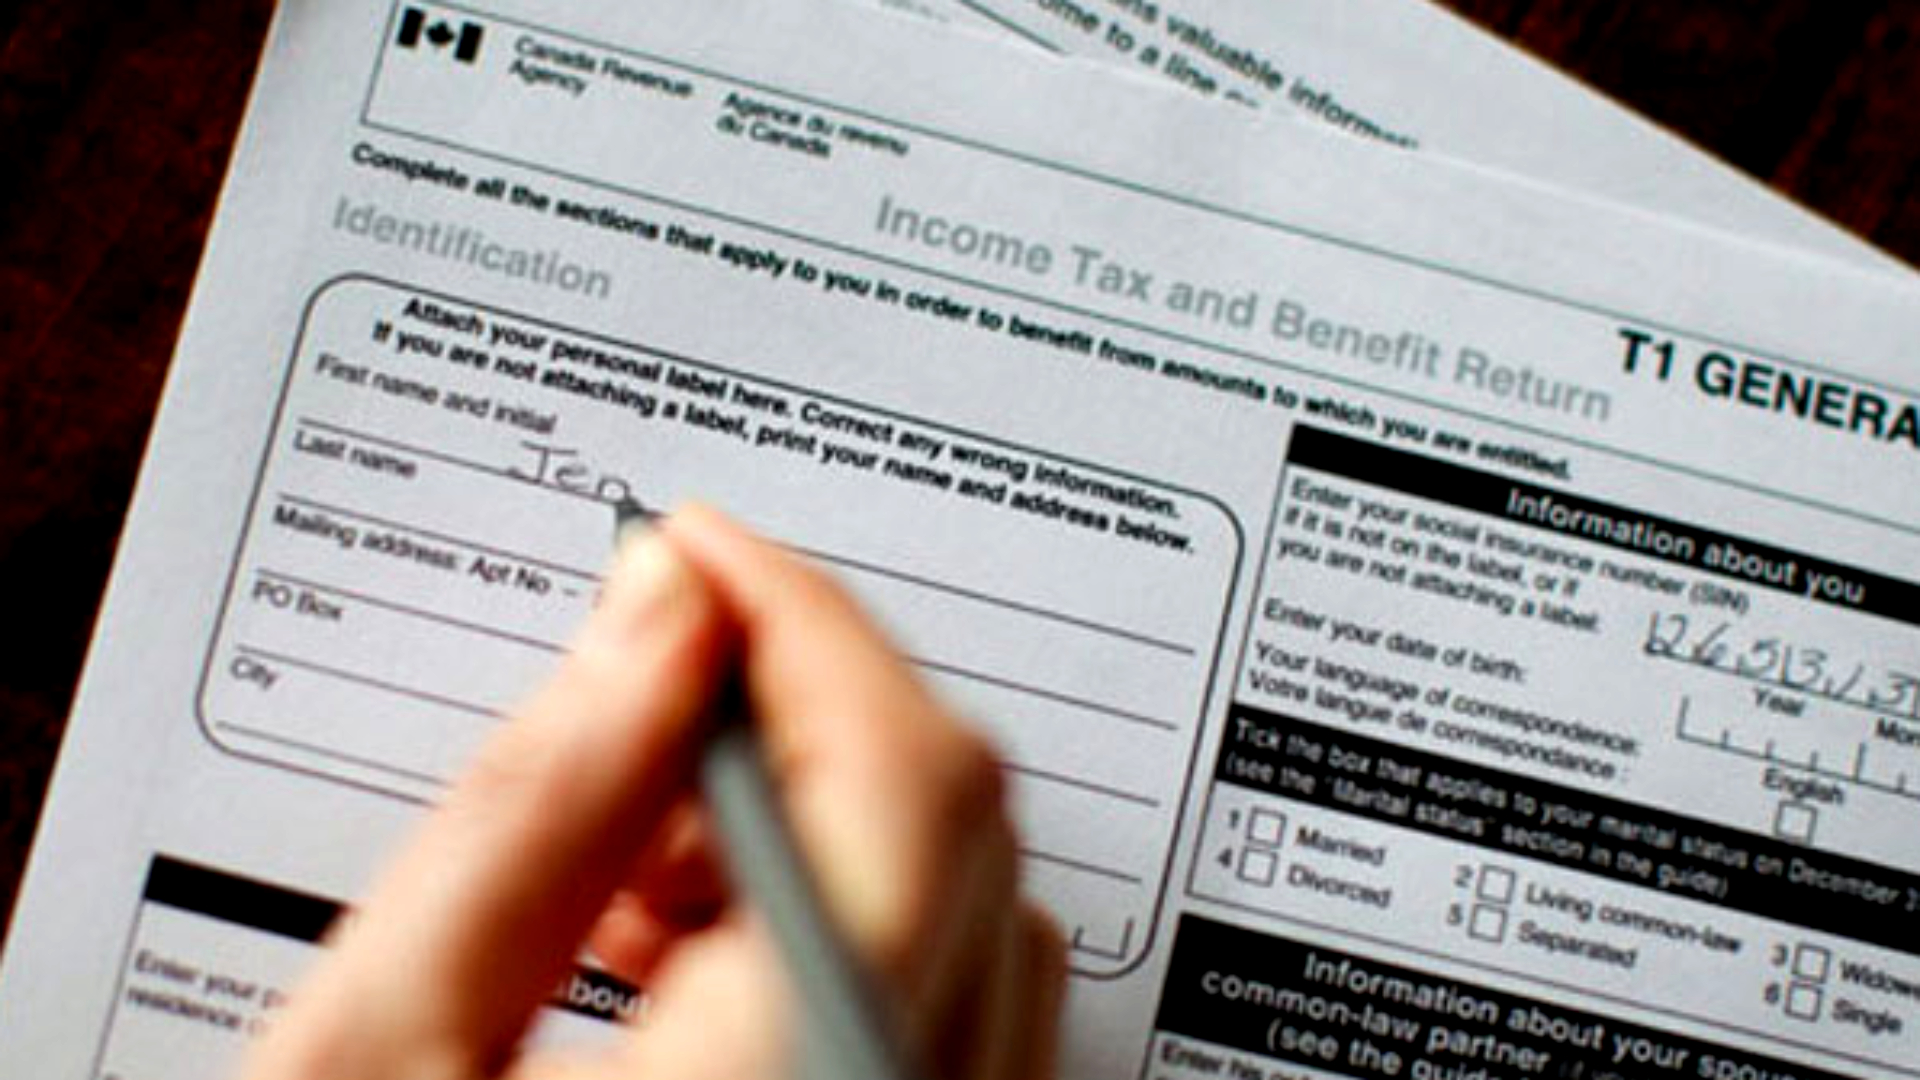 There are new rules this tax season, courtesy of COVID-19. Here's what you need to know